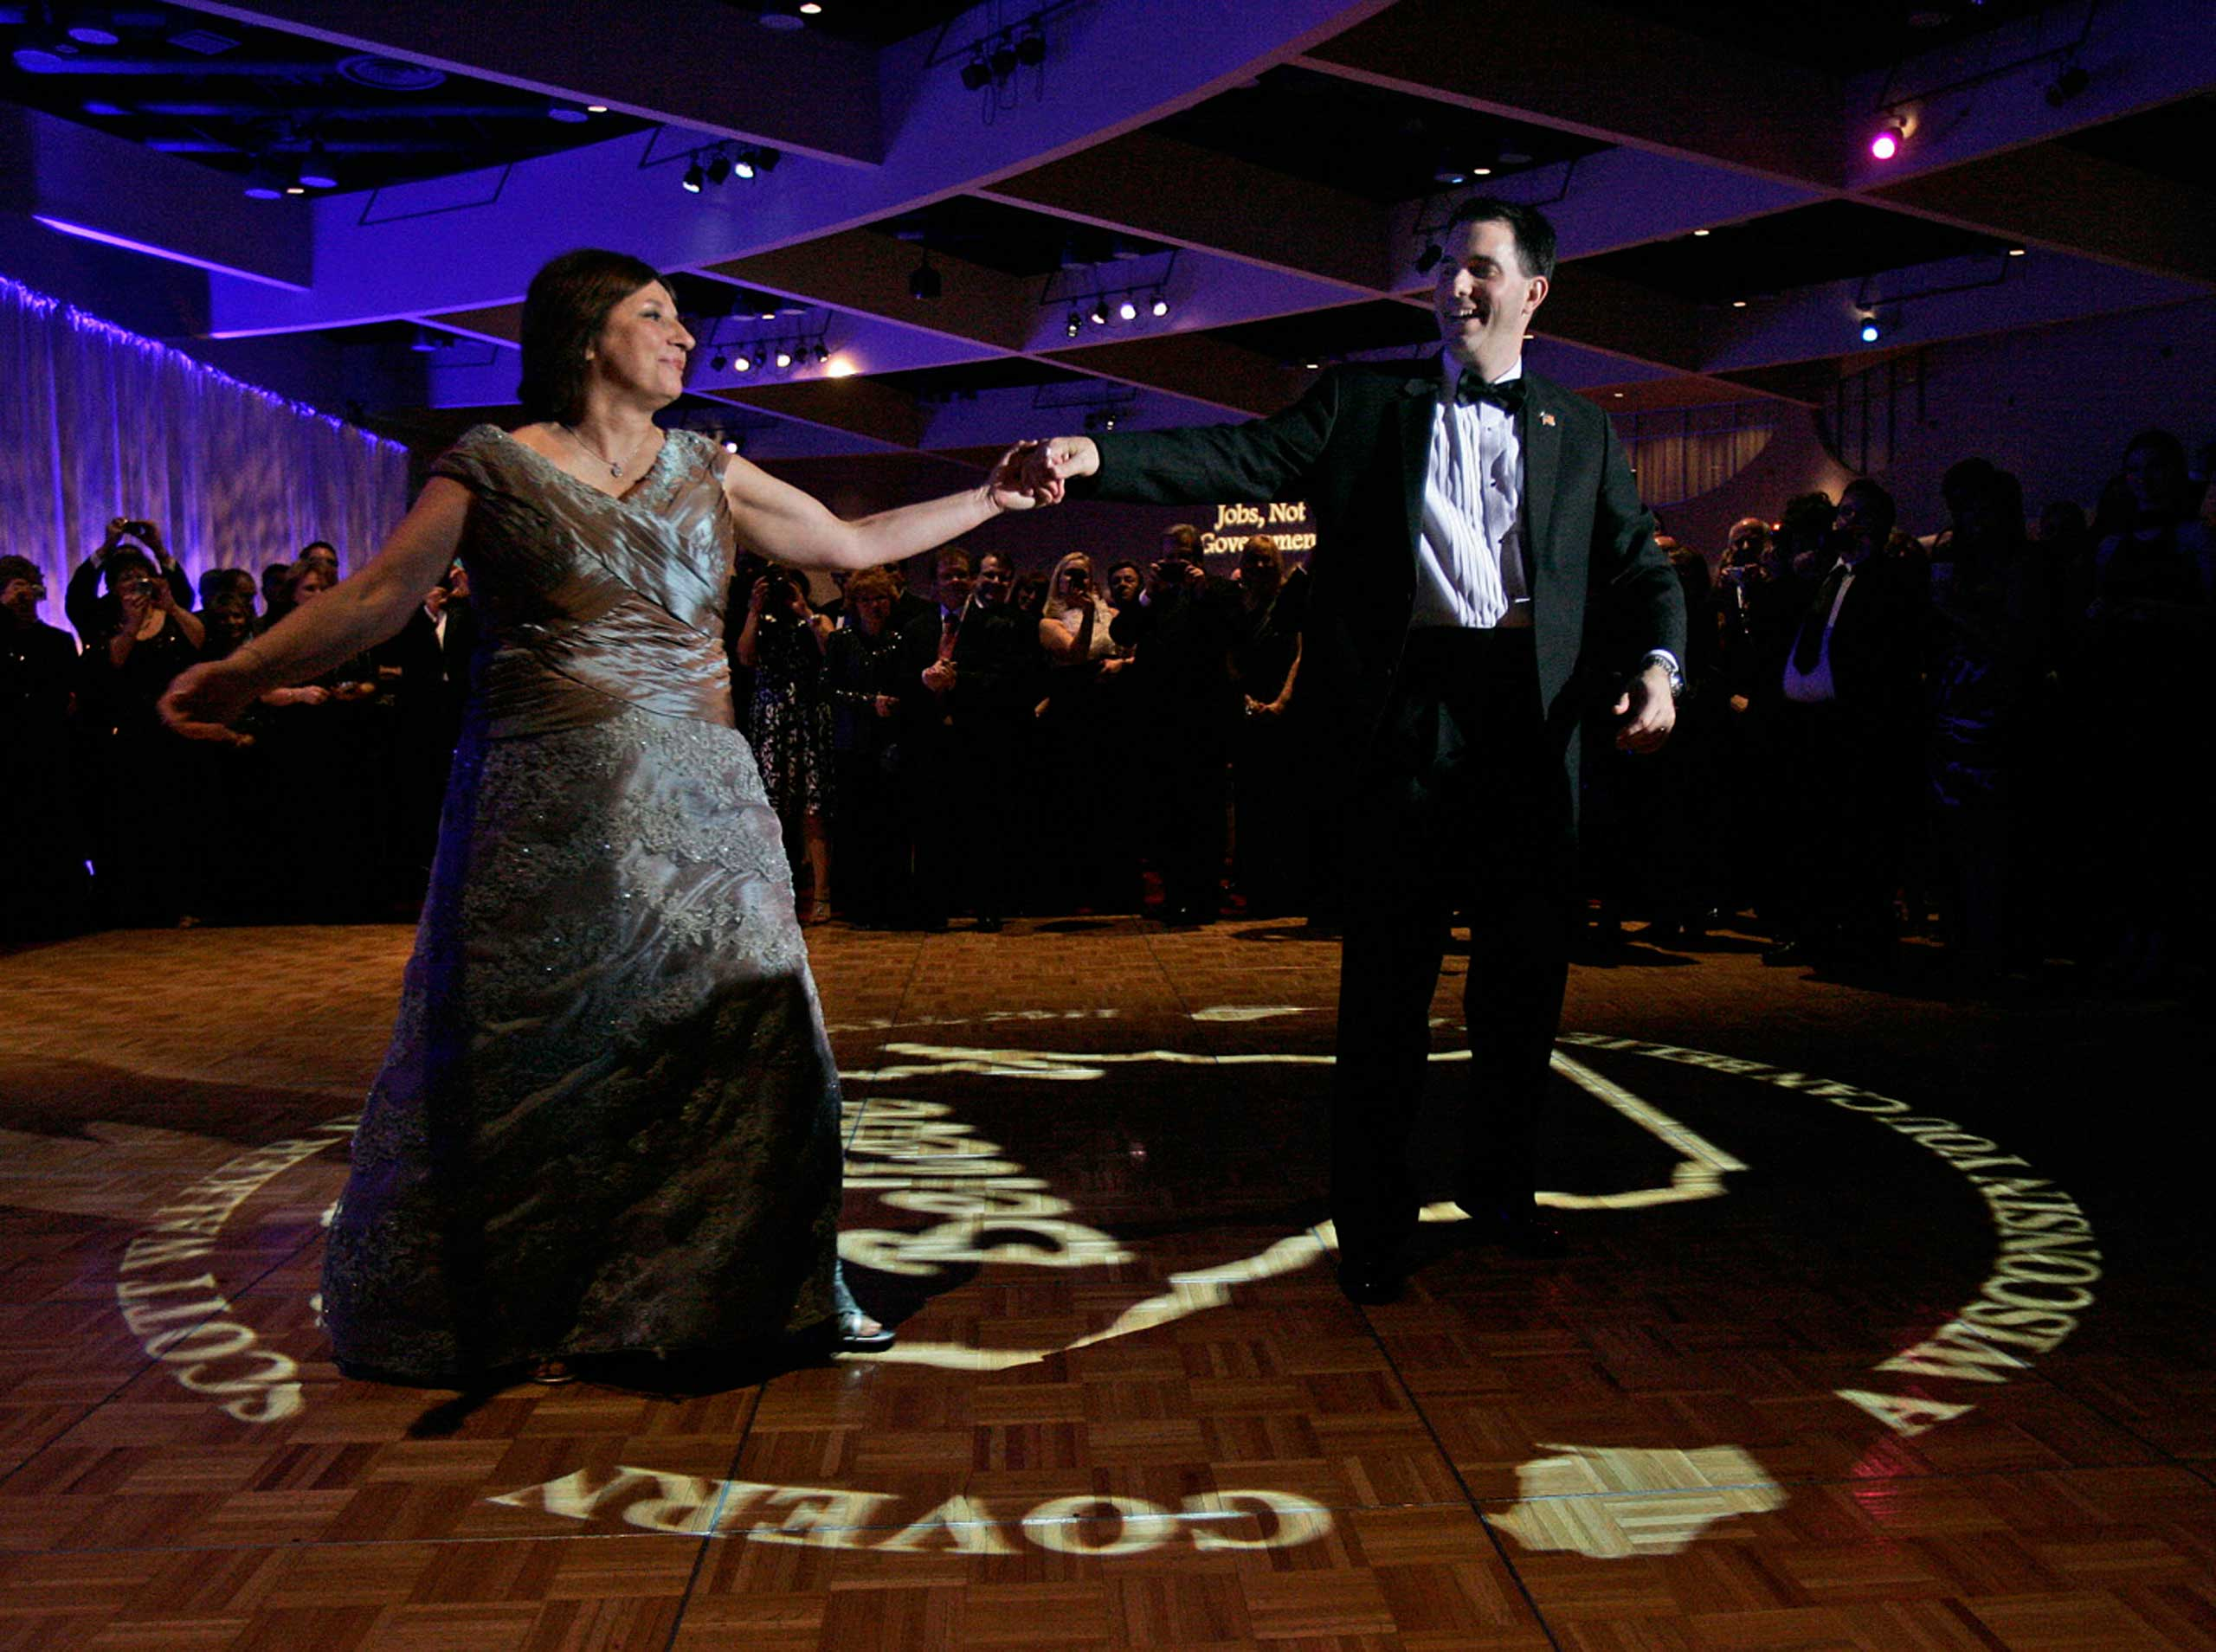 Scott Walker dances with his wife, Tonette, at the Inaugural Ball at Monona Terrace in Madison, Wis., on Jan. 3, 2011.